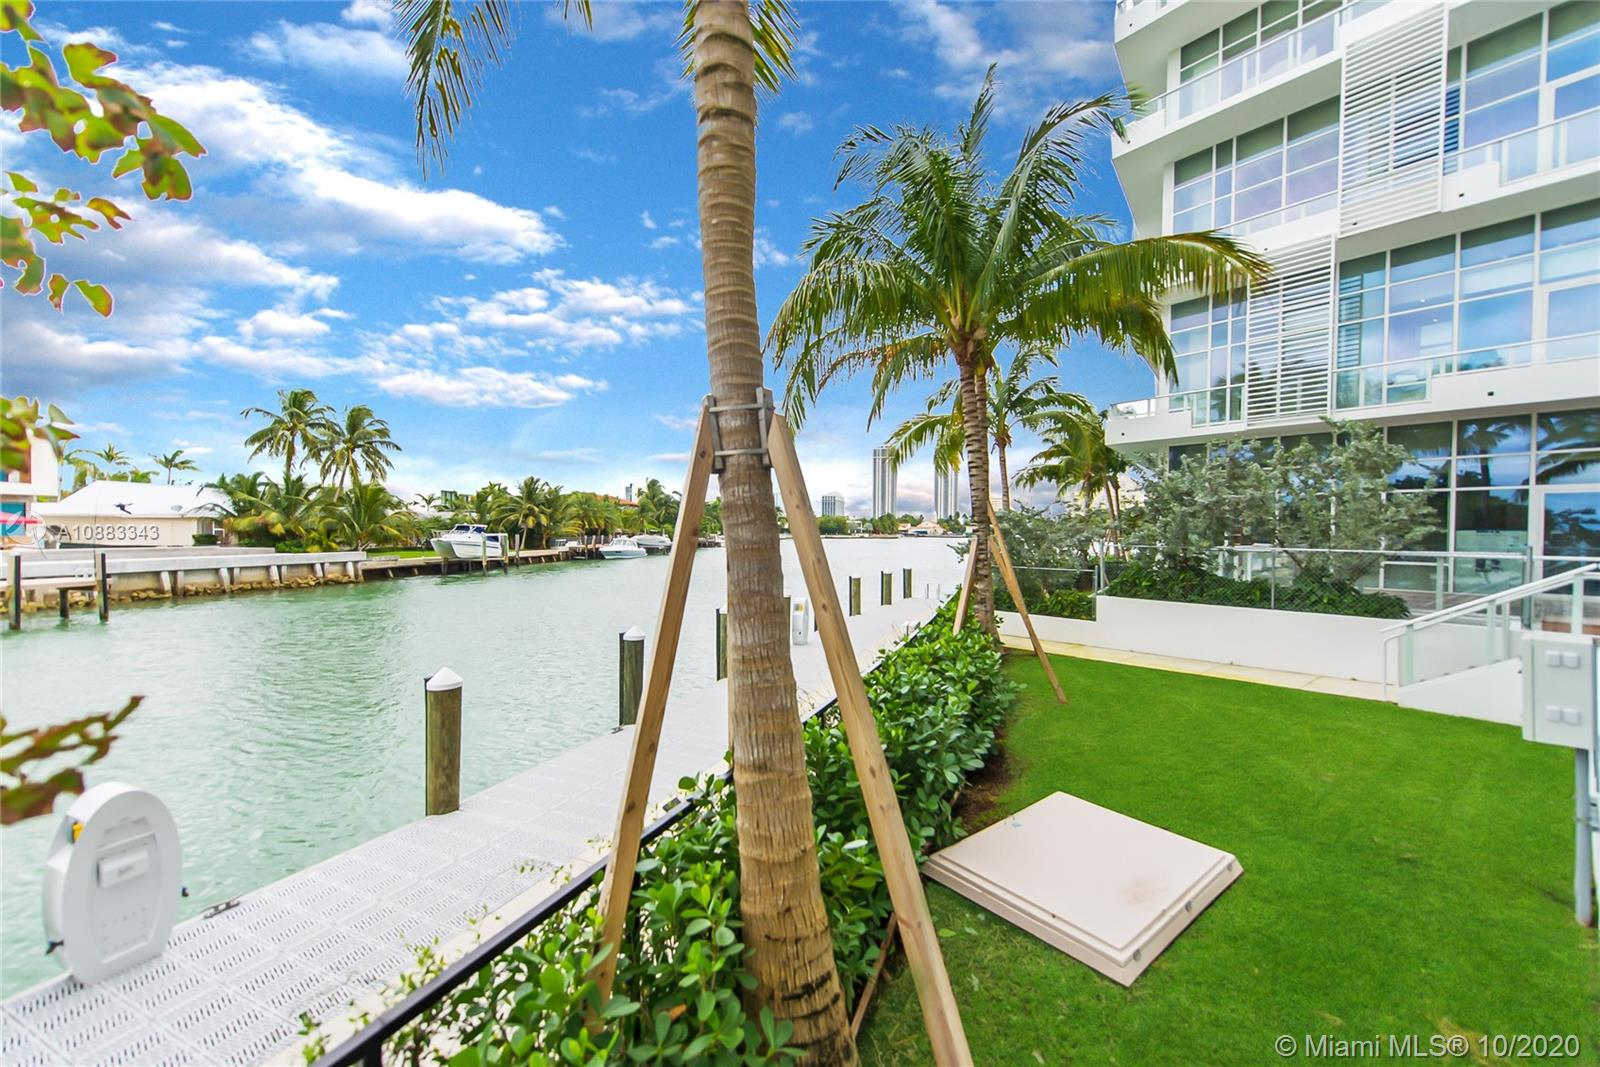 4701  Meridian #127 For Sale A10883343, FL